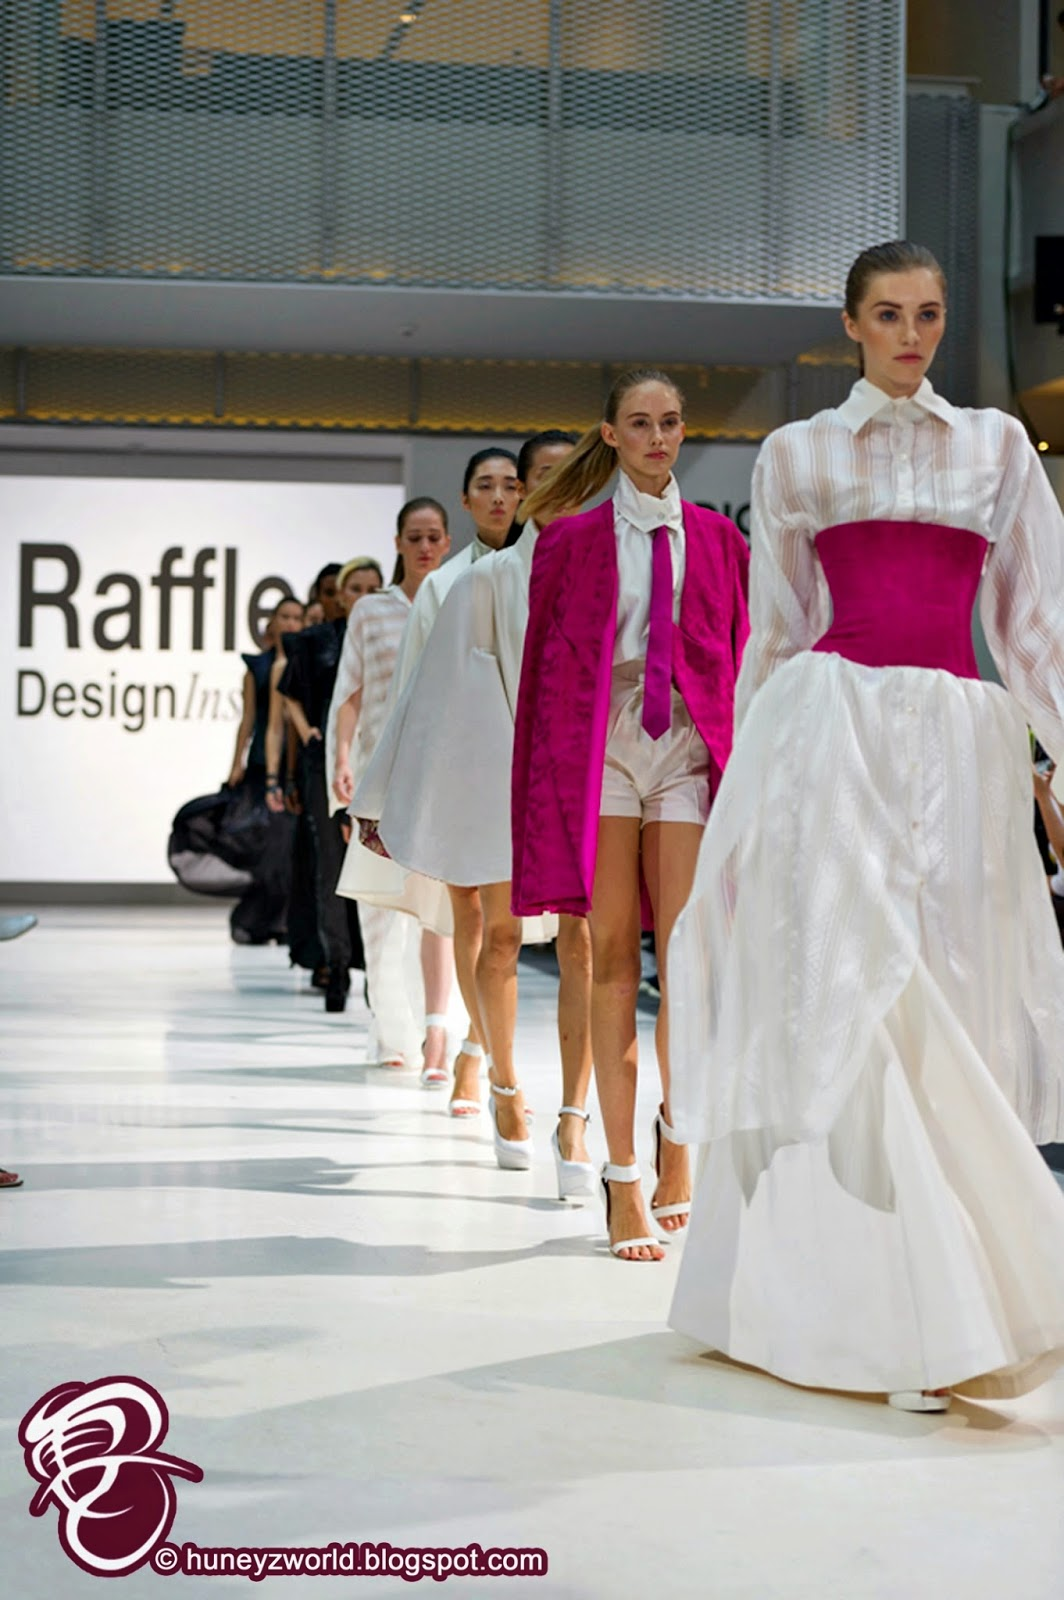 These Are the Top 5 Fashion Schools in the World recommendations